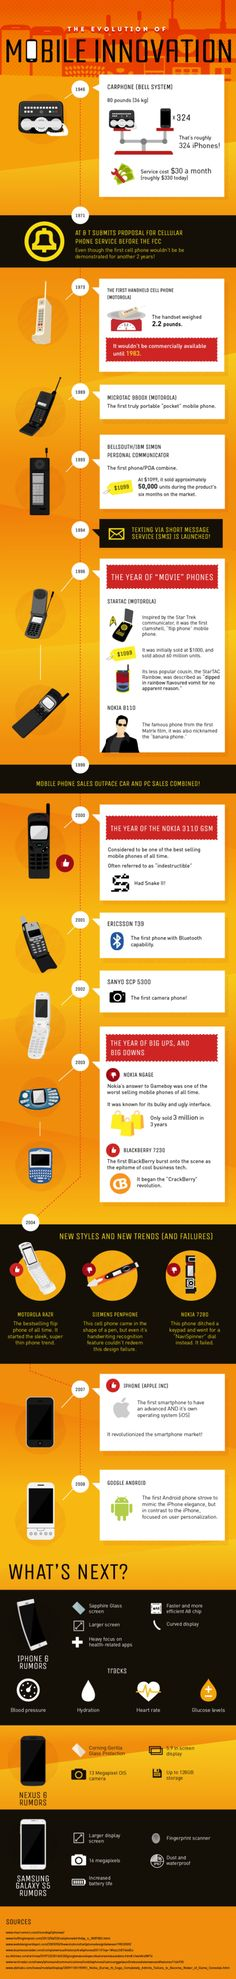 The Evolution of Mobile Innovation